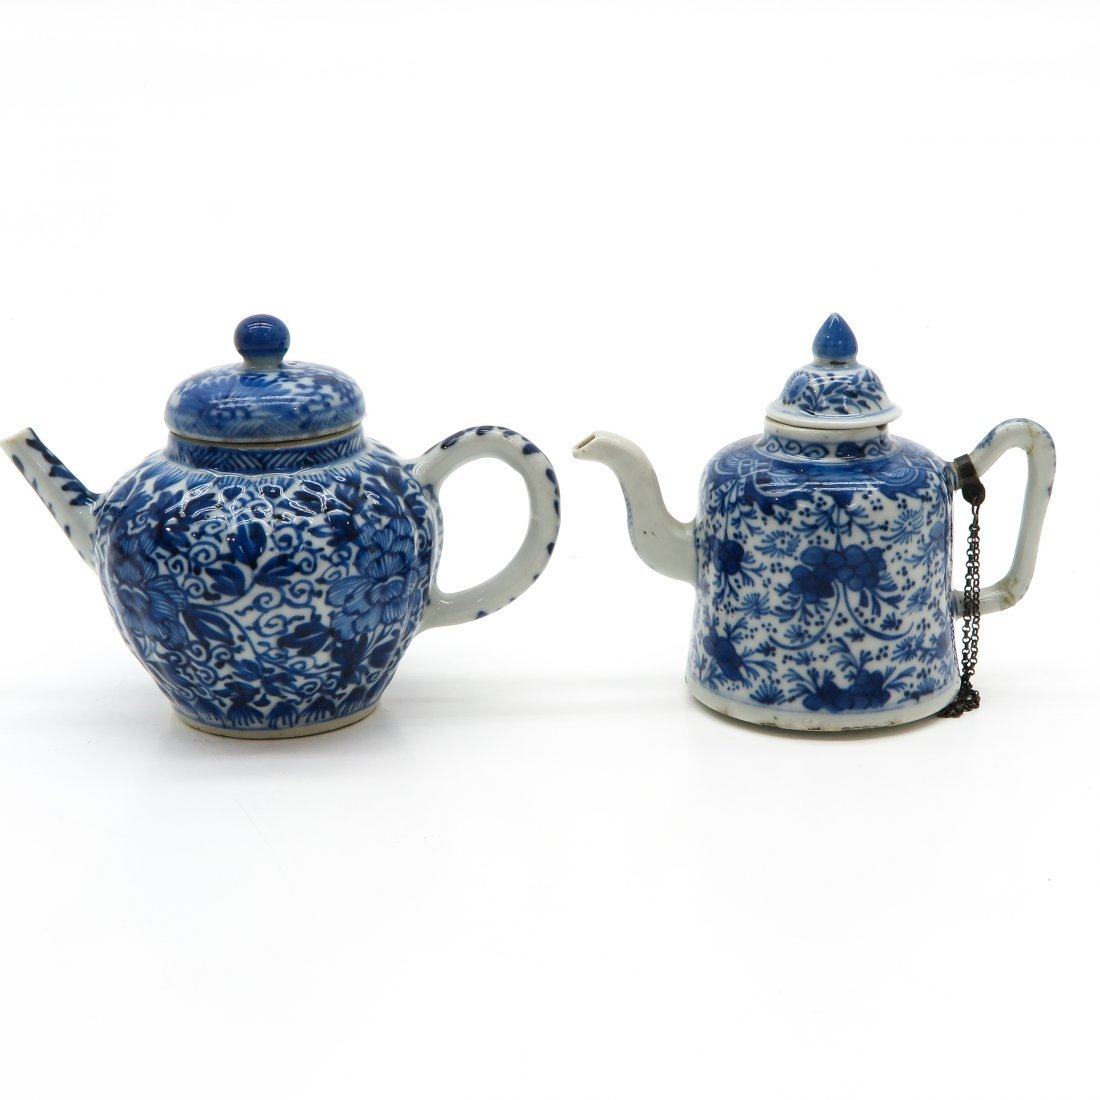 Lot of 2 China Porcelain Teapots